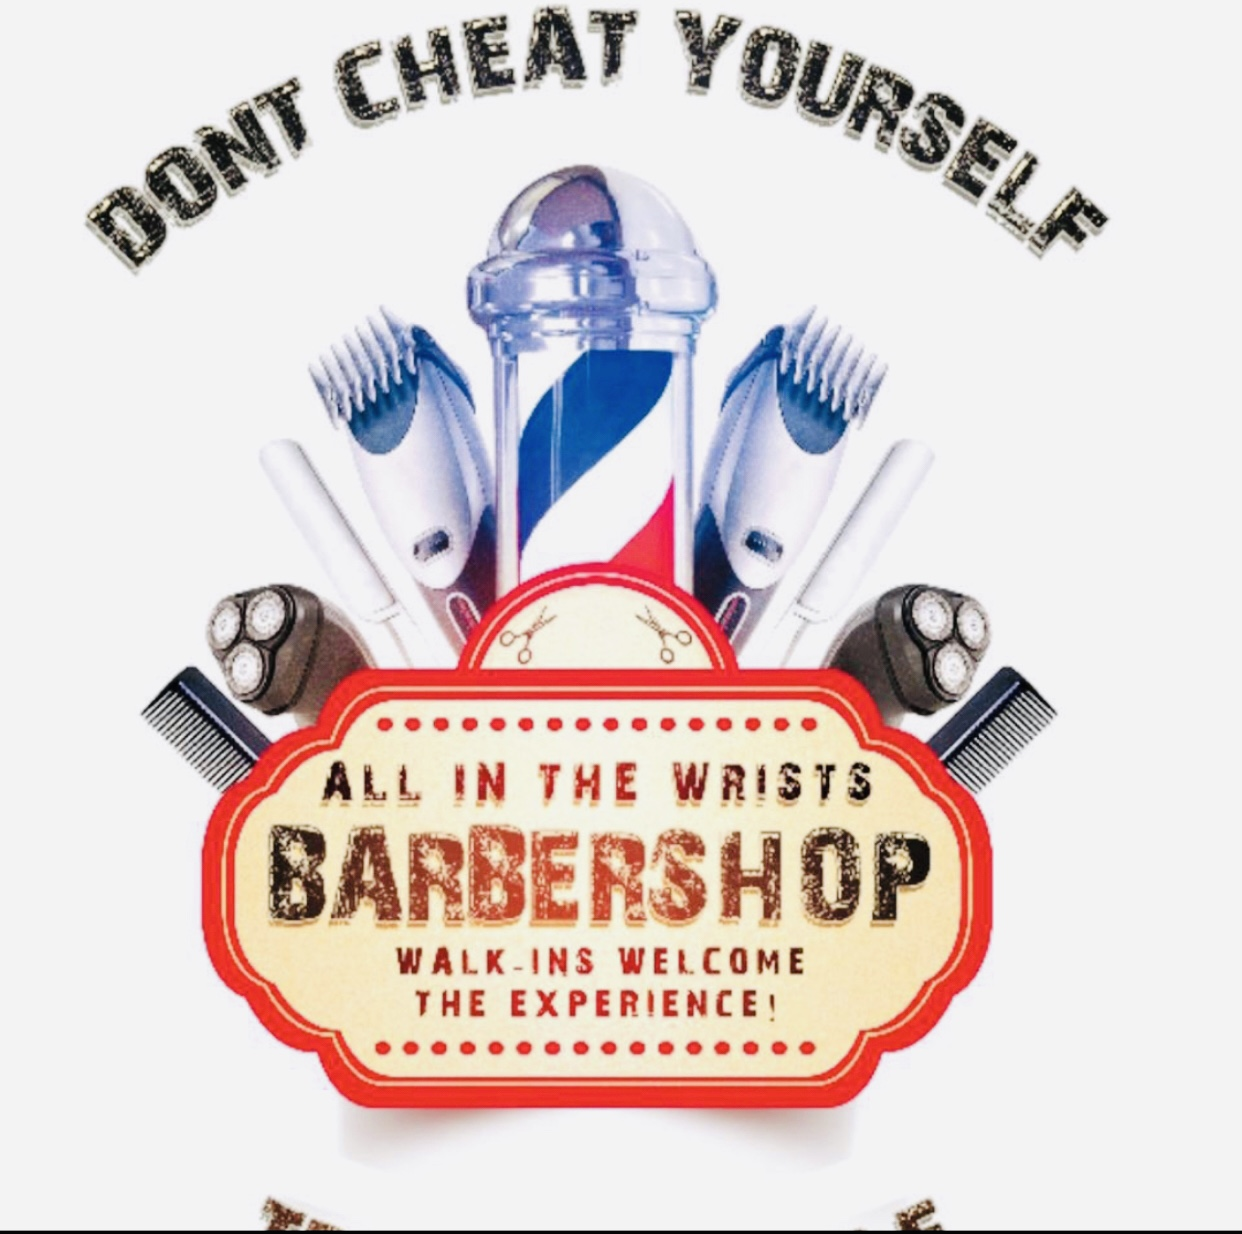 All In The Wrist Barbershop - Black Owned